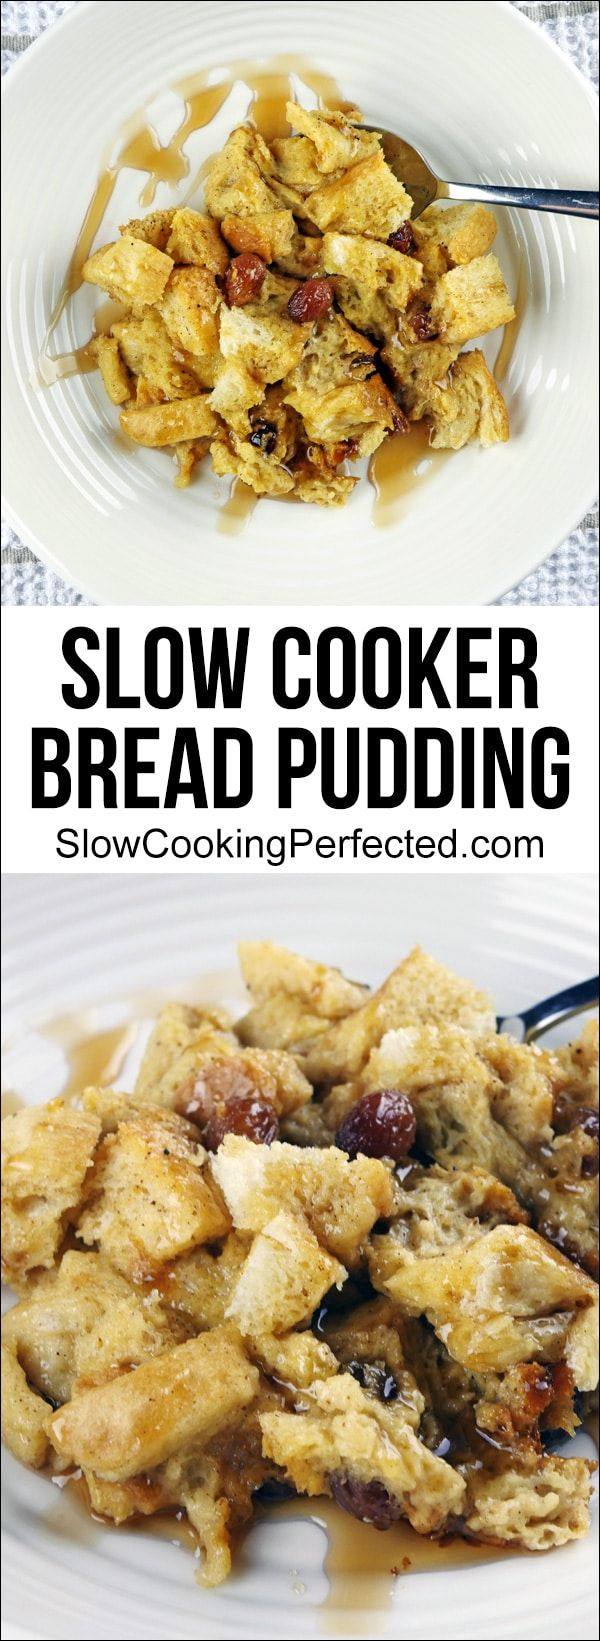 Incredibly Delicious Slow Cooker Bread Pudding